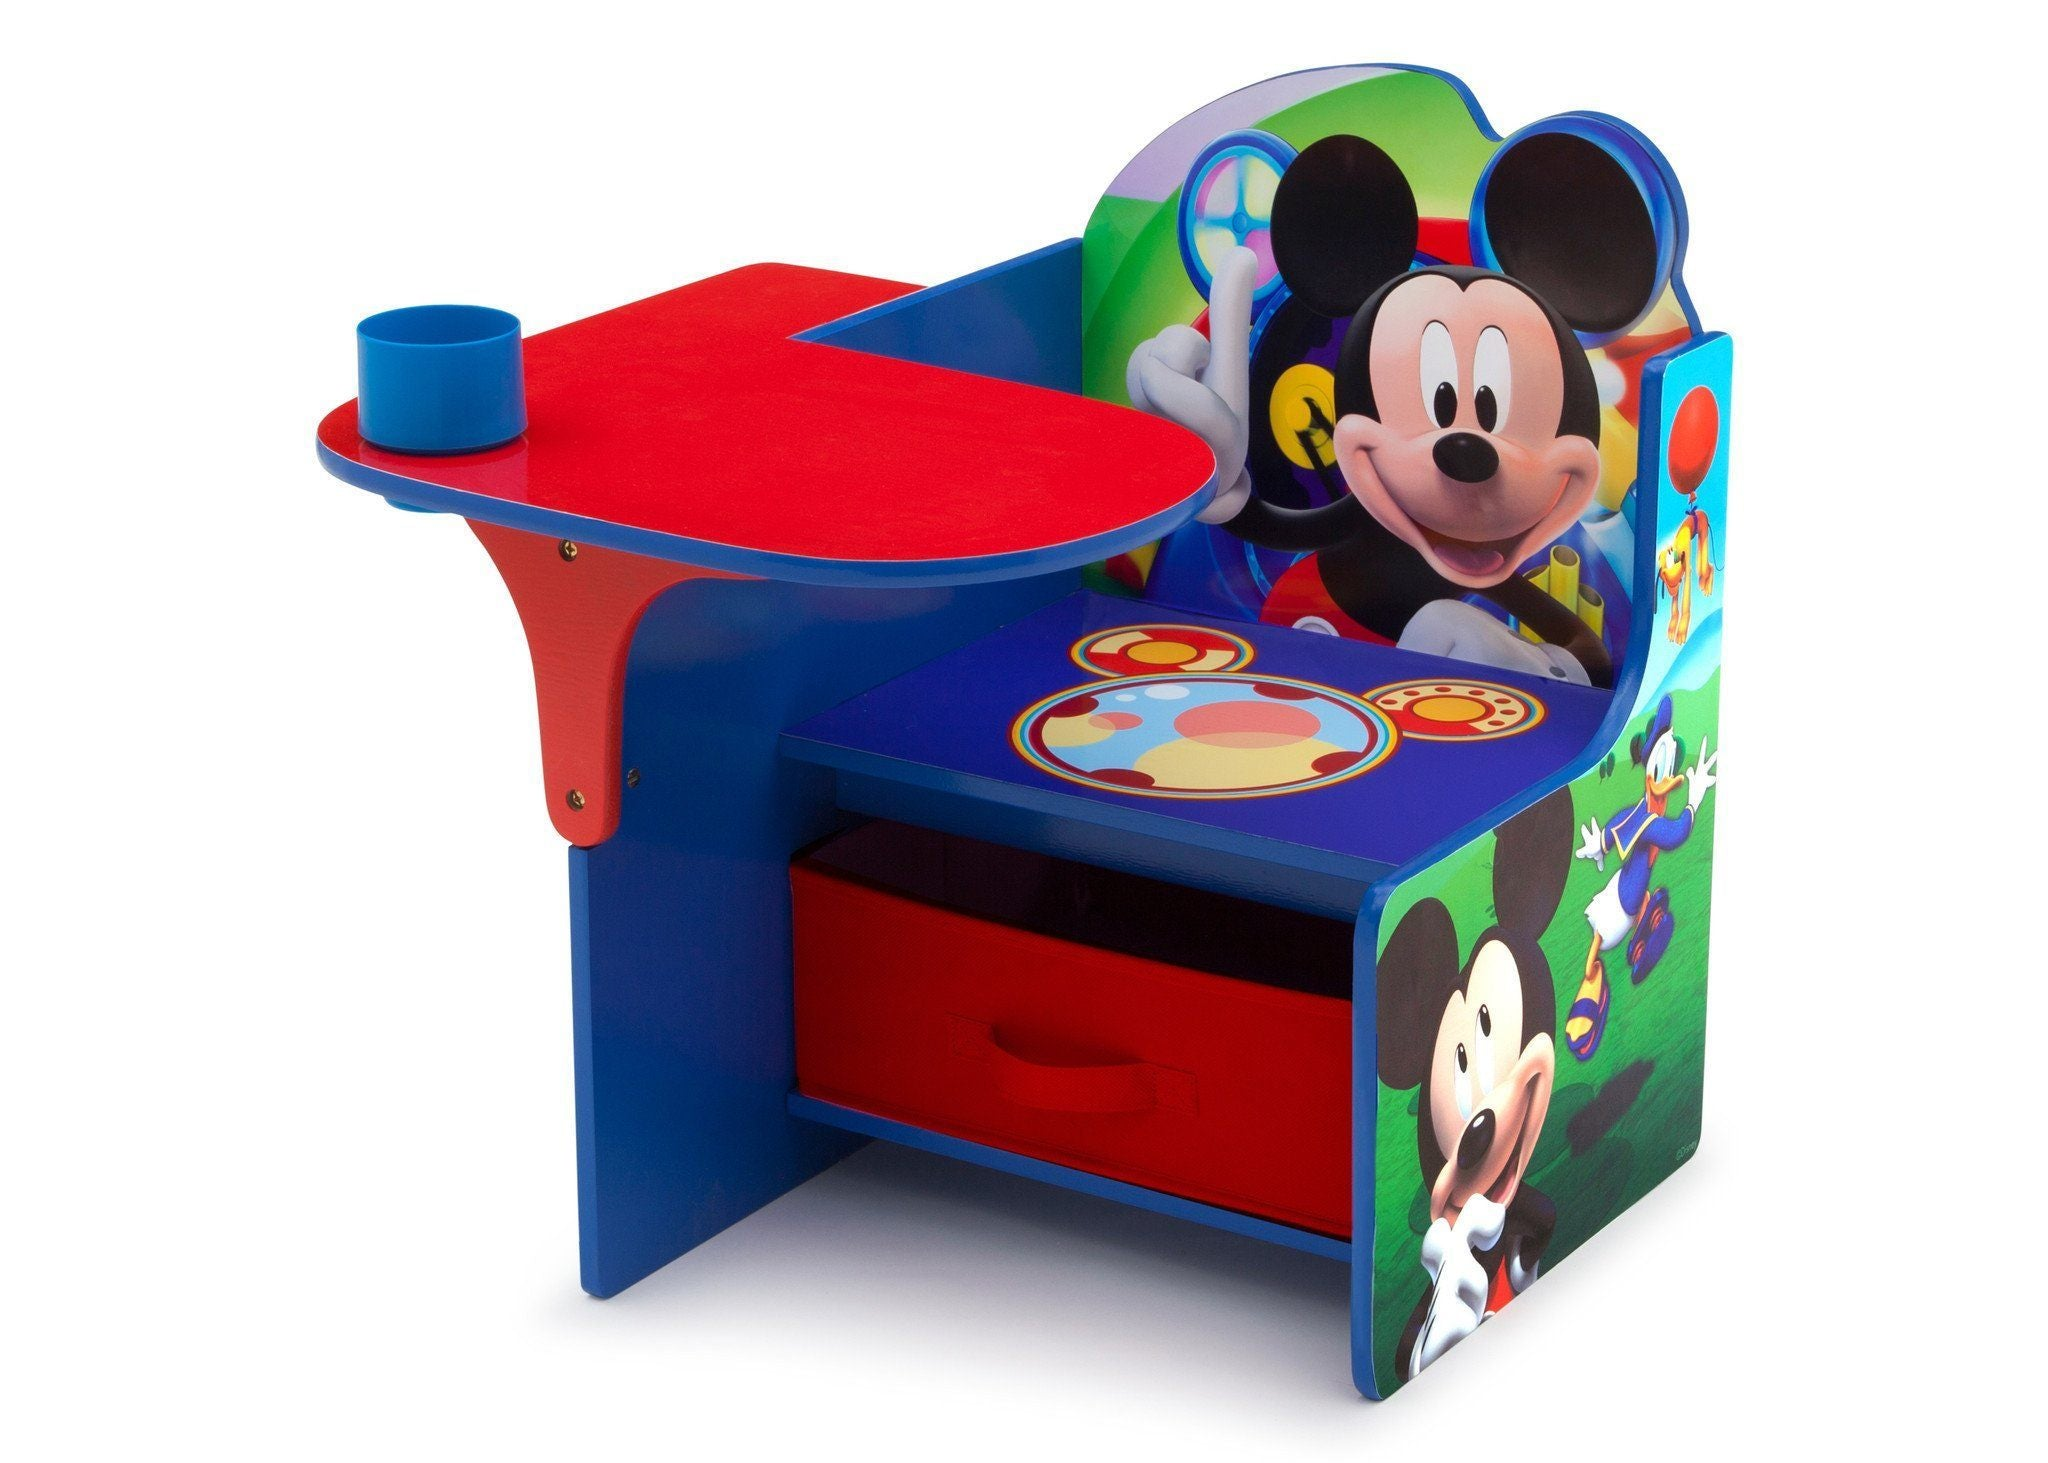 mickey mouse chair desk with storage bin delta children rh deltachildren com mickey mouse chair desk with storage bin uk delta children's products mickey mouse chair desk